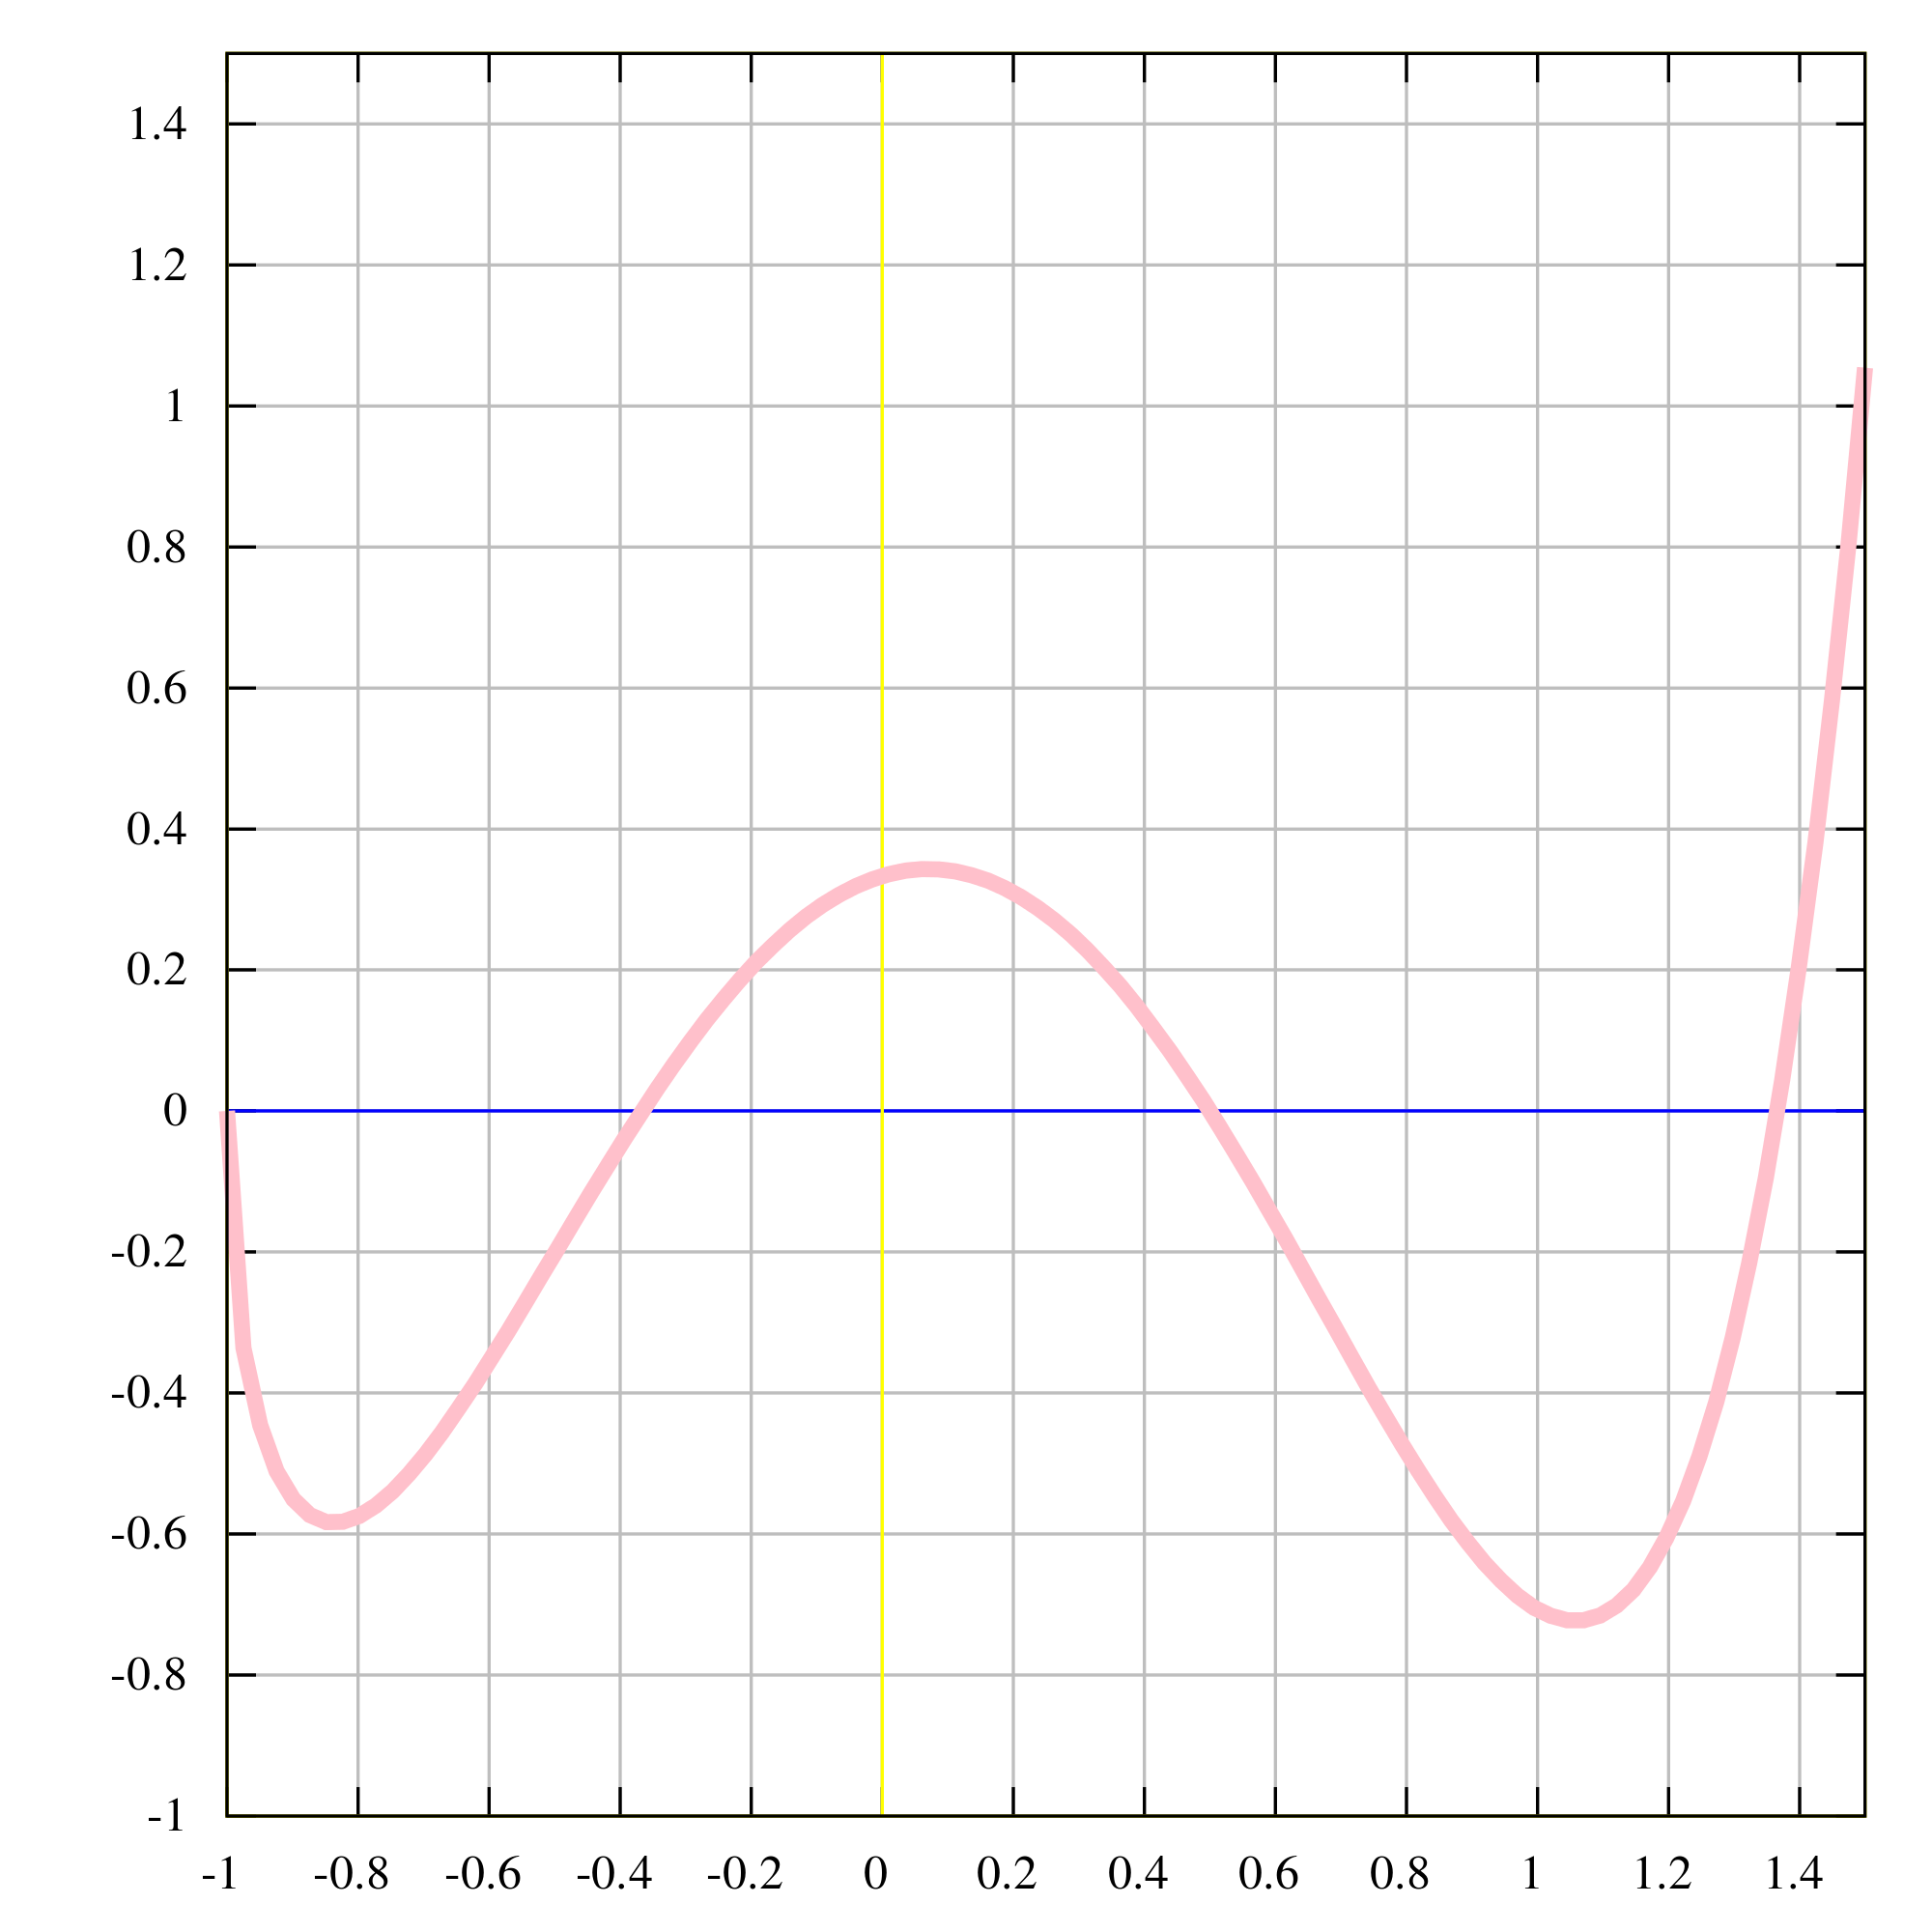 Svg graph. File of example function